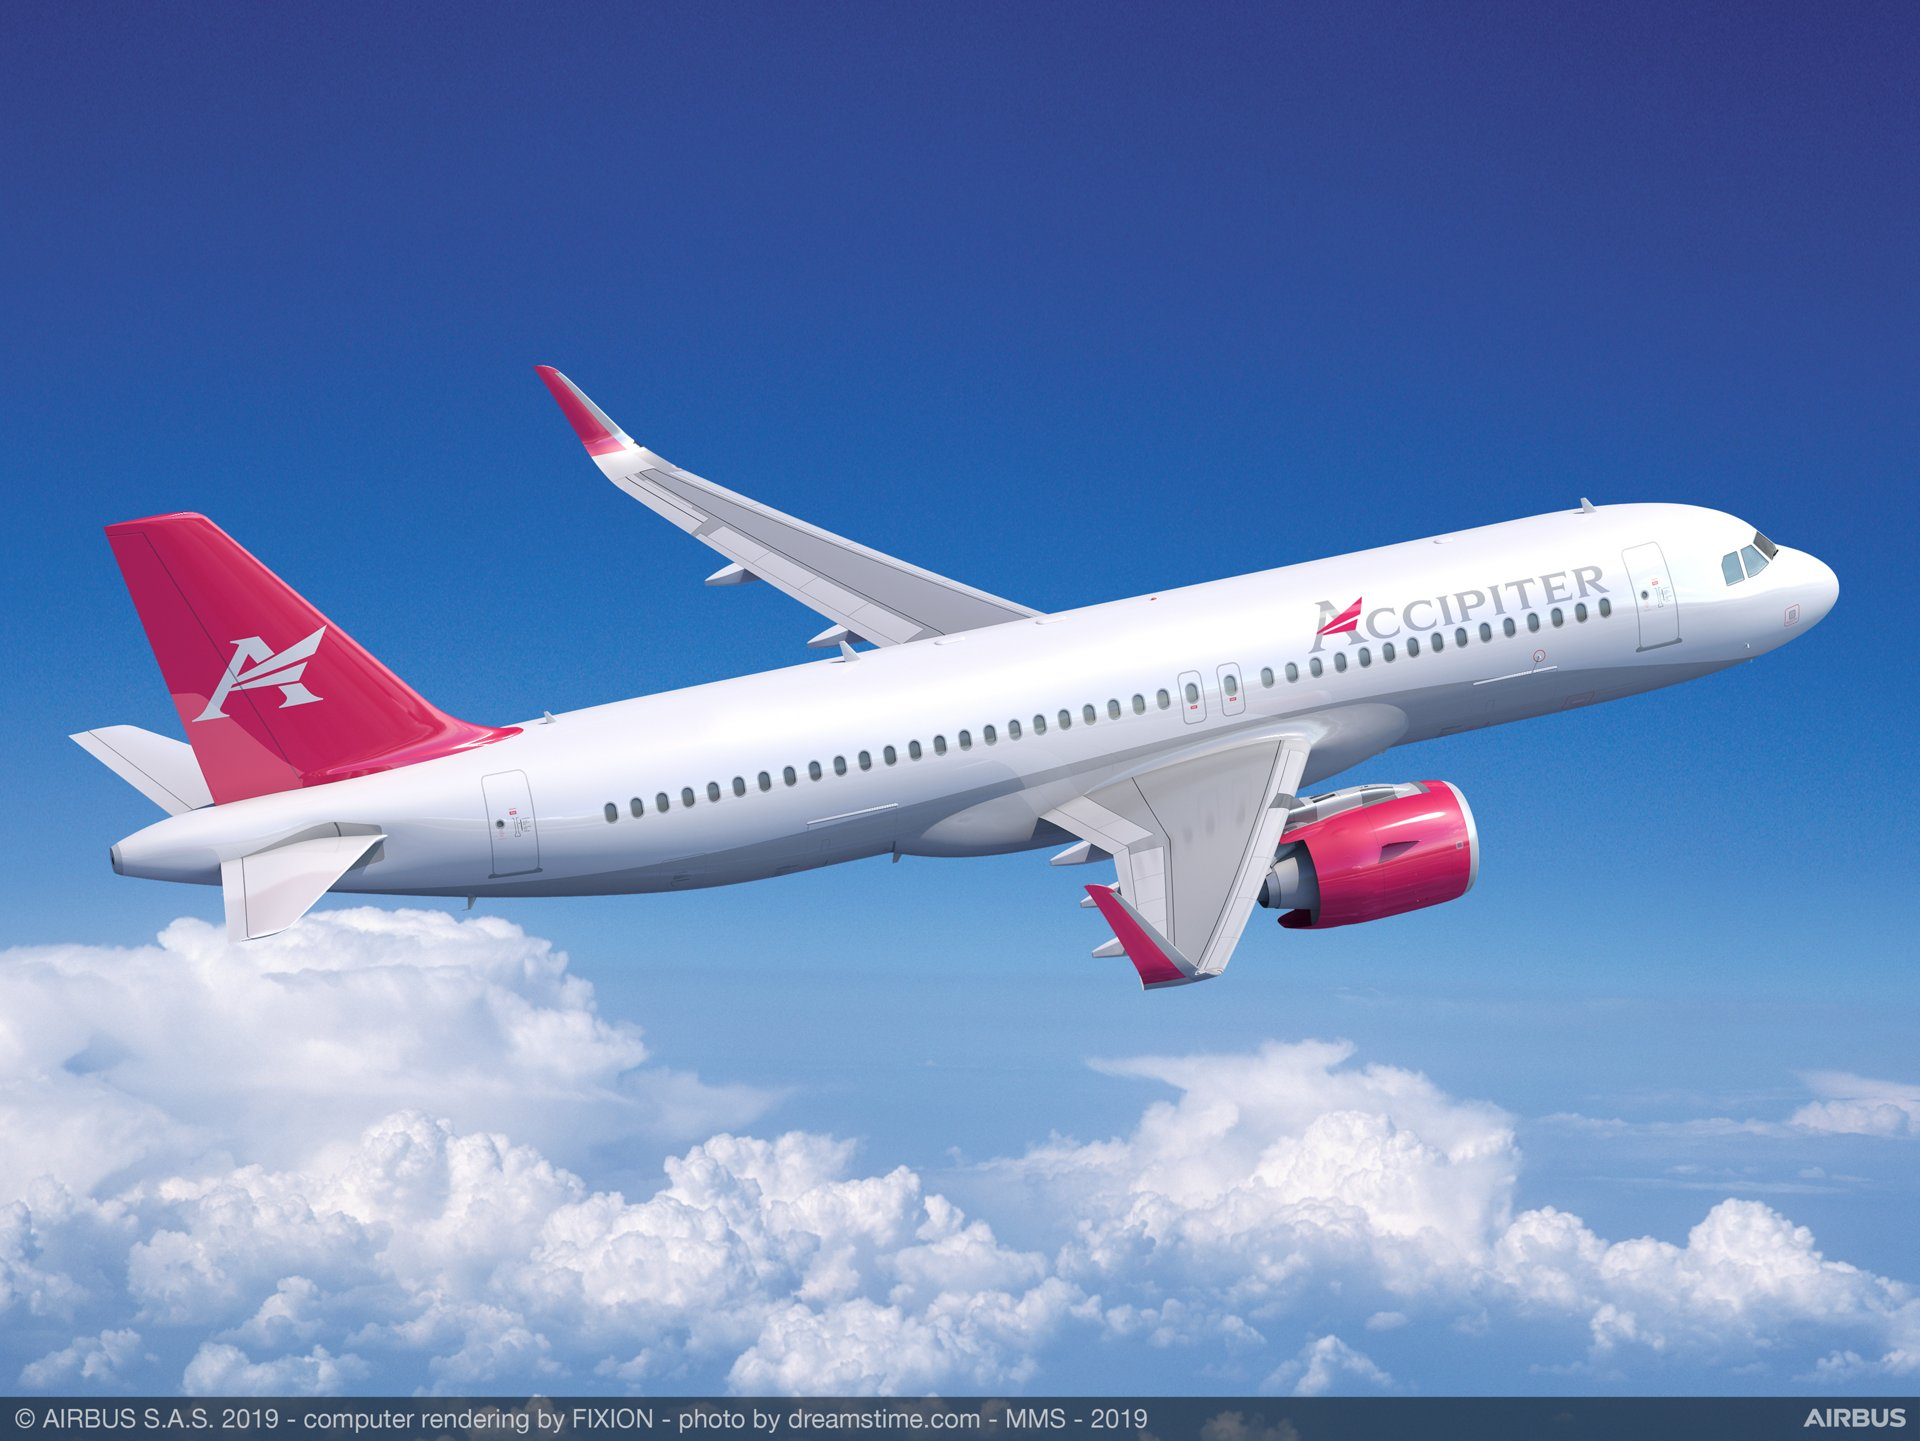 Dublin-based leasing company Accipiter Holdings' purchase agreement for 20 A320neo aircraft was announced during the 2019 Paris Air Show